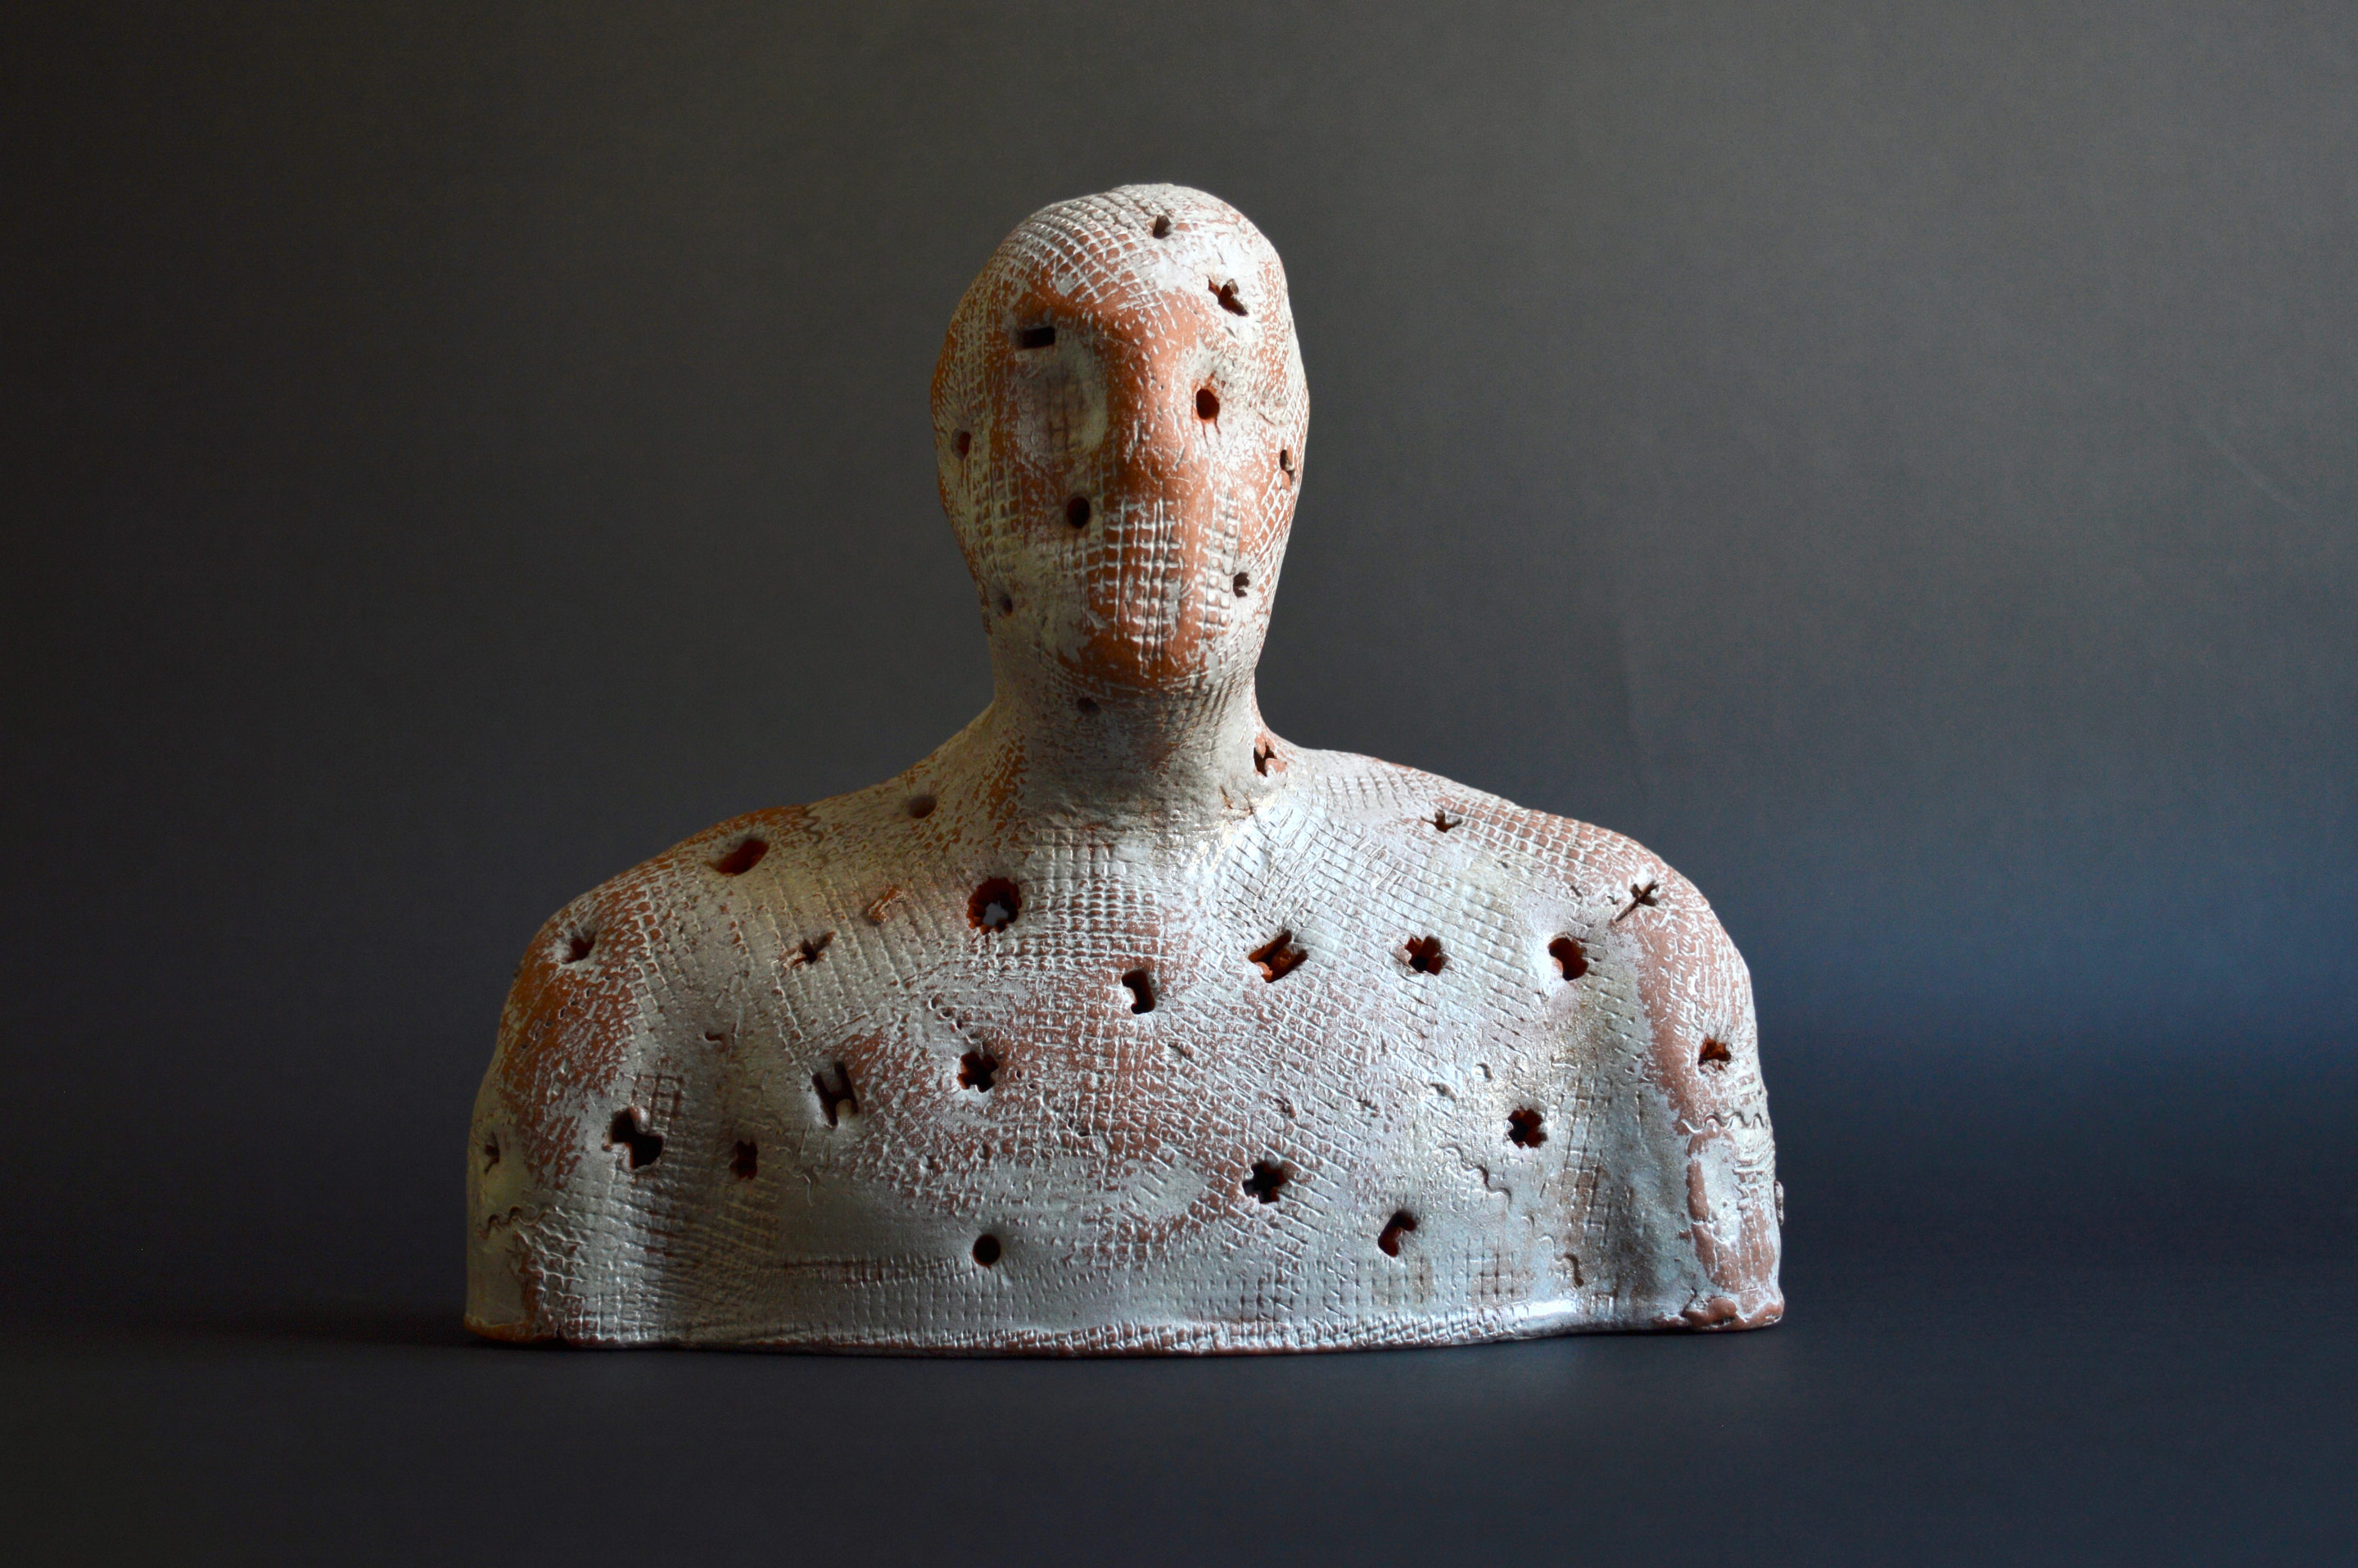 A glazed terra cotta figure 20cm wide which is part of a developing installation of 13 or more figures in glazed and unglazed terra-cotta, plaster and papier mache illuminated by LED lights on stands made of cardboard and mdf